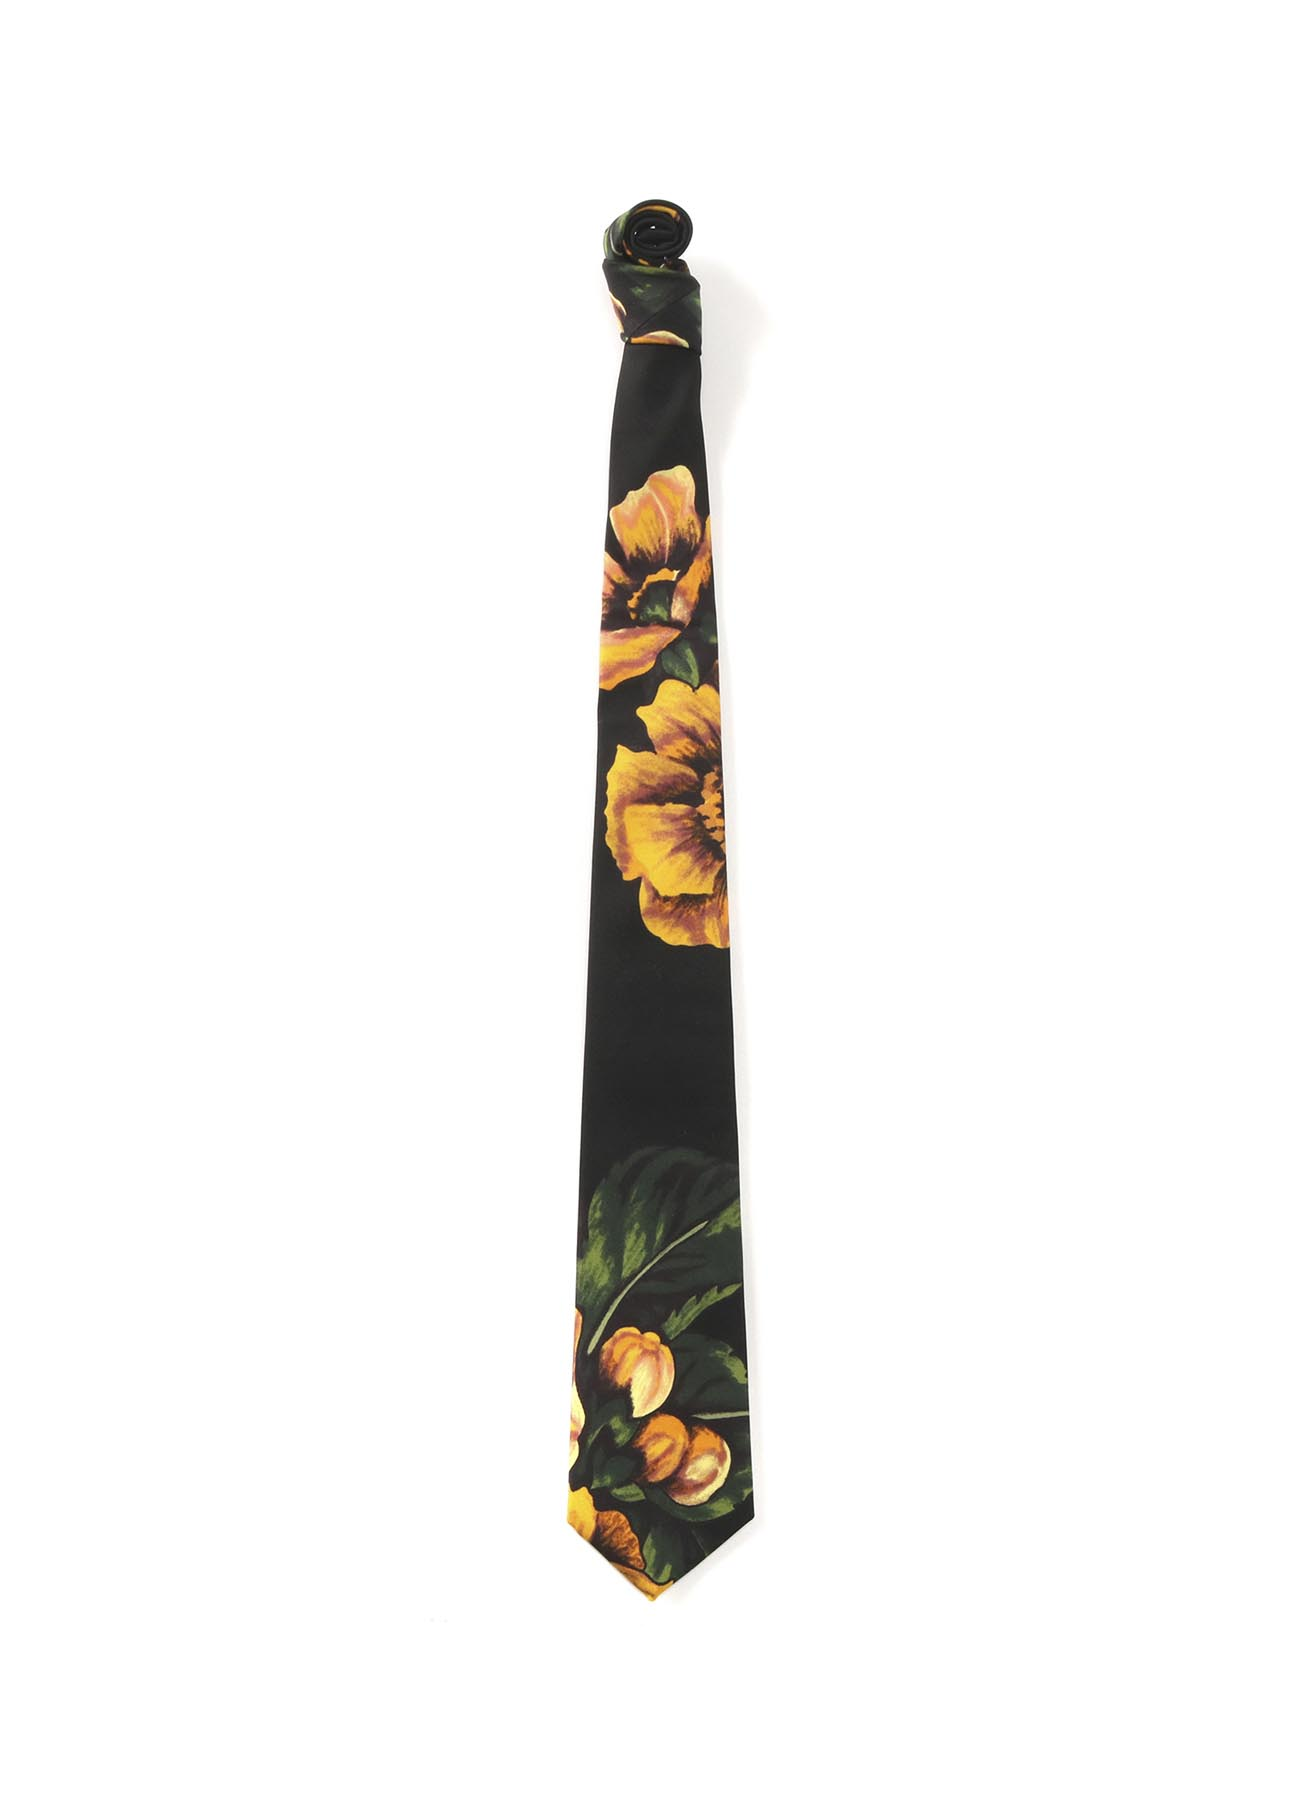 15MONME S/TWILL PT C FLOWER PRINT TIE YELLOW